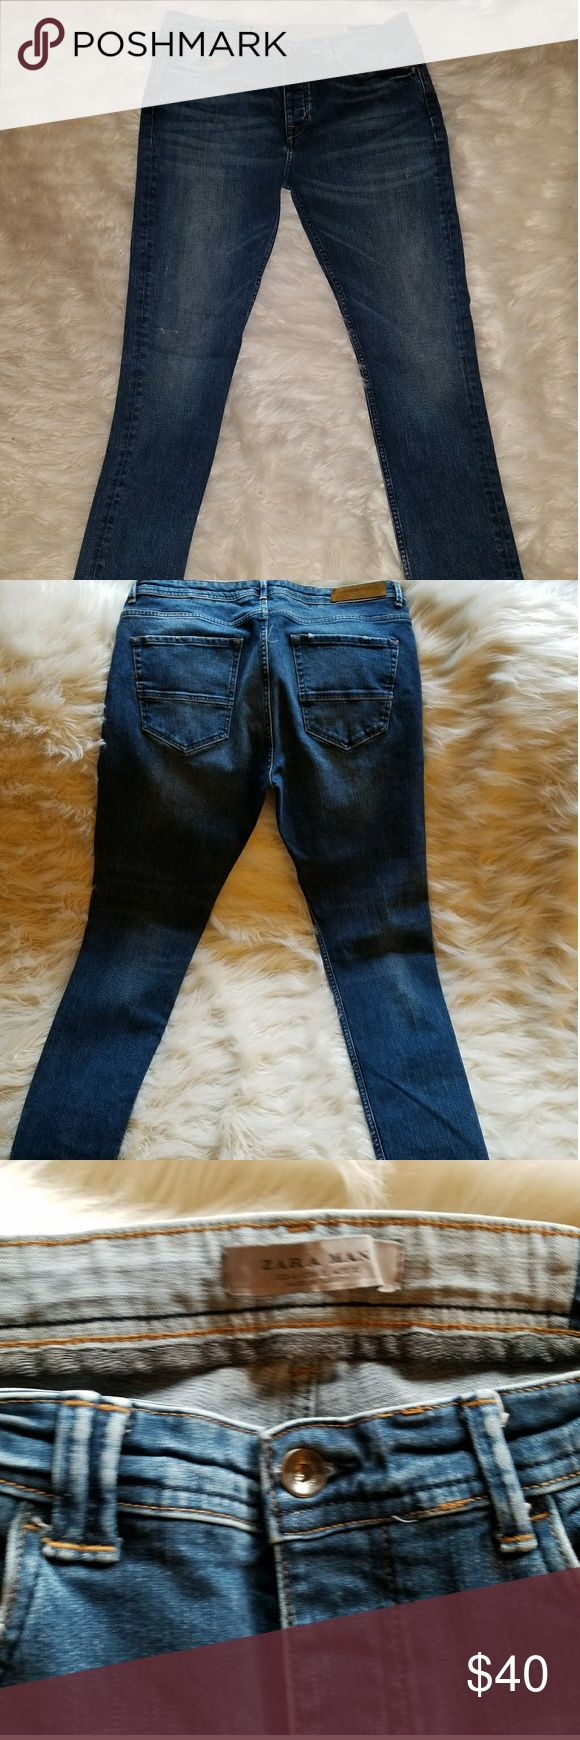 Zara Man Skinny Jeans prrviously loved Like New Super Skinny No Trades or Holds  Offers Welcome Zara Jeans